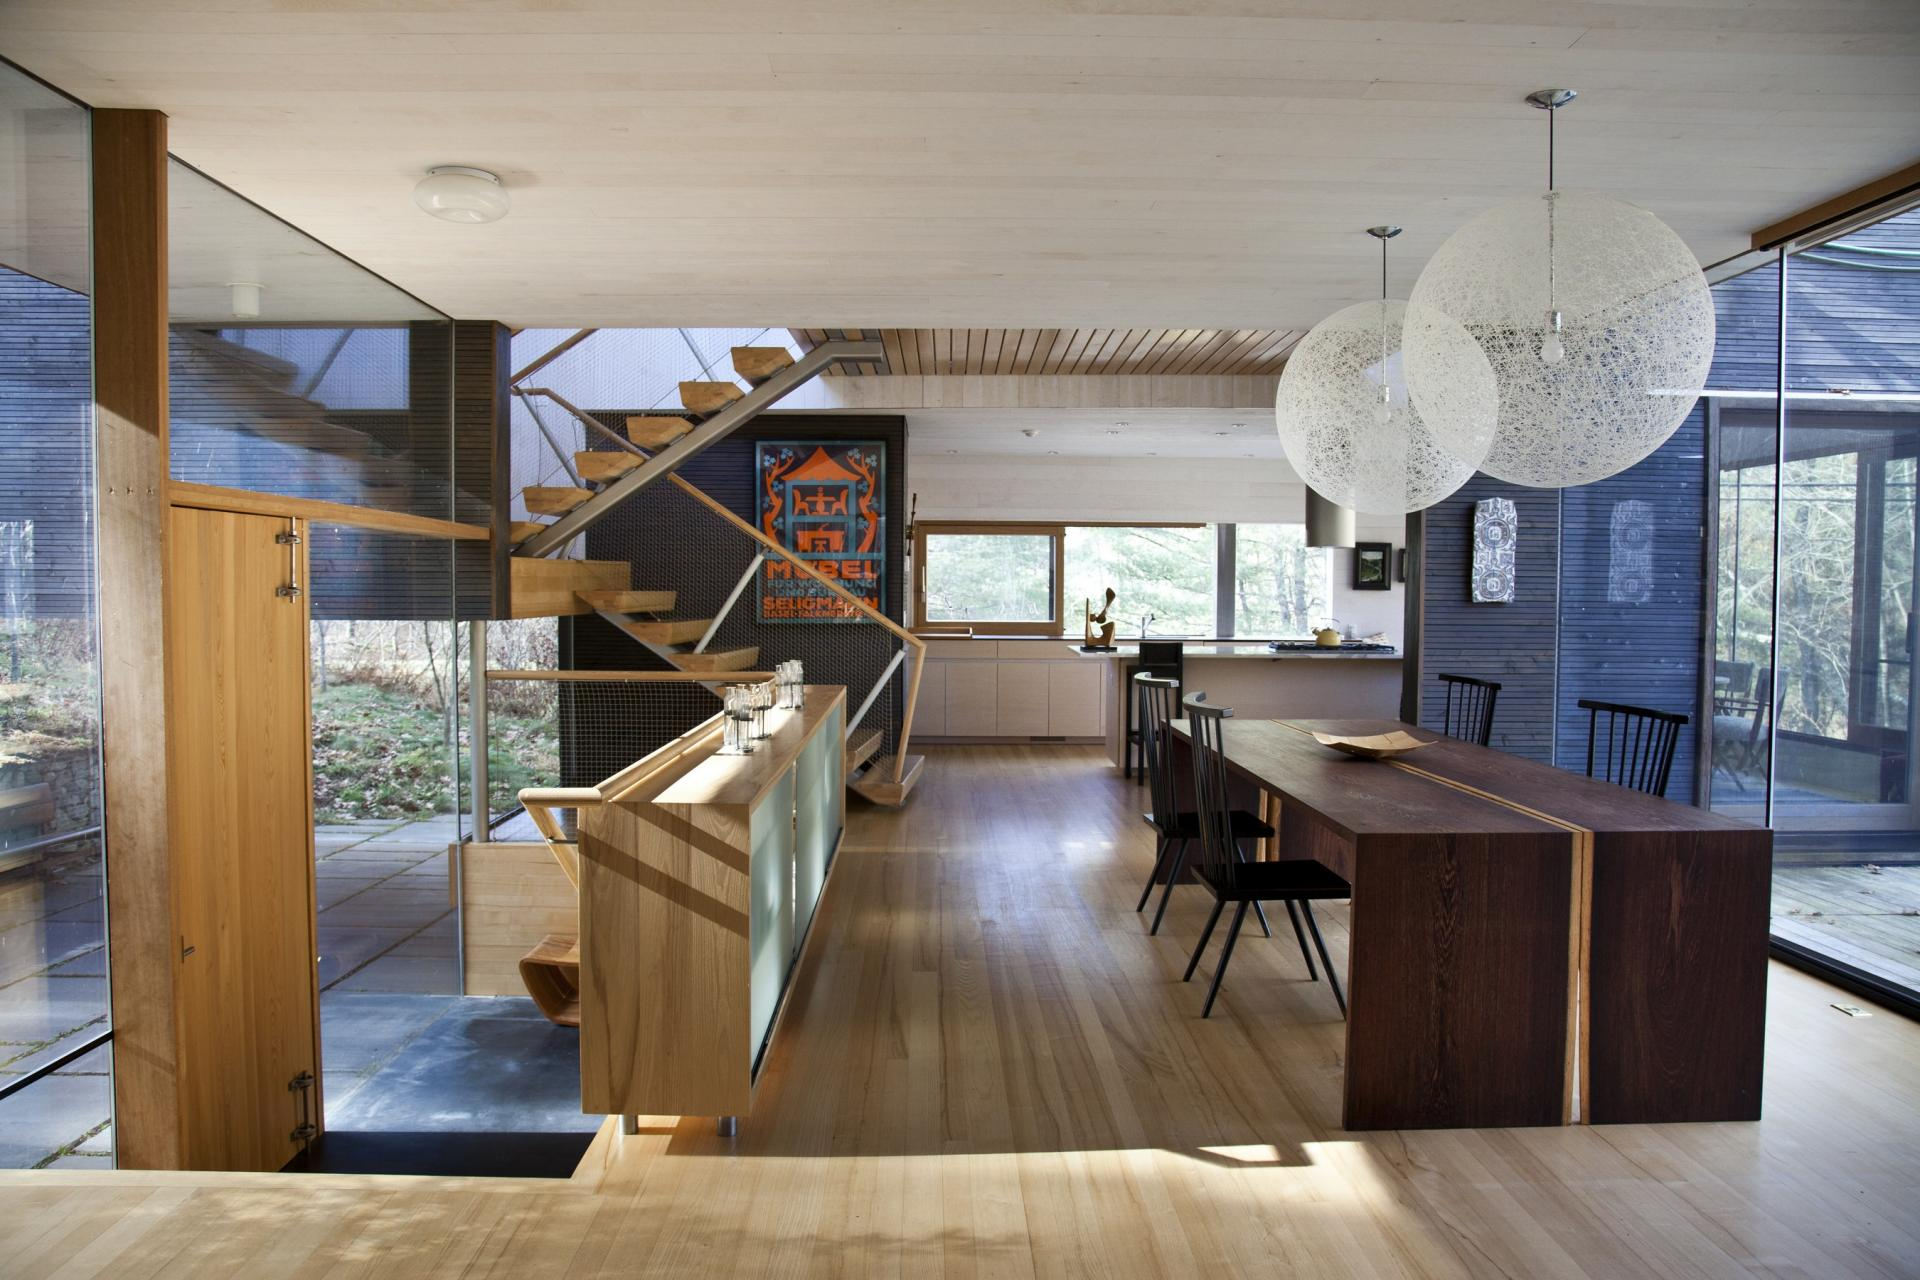 Lighting, Dining Table, Stairs, Glass Walls, Rural Retreat in Bantam, Connecticut